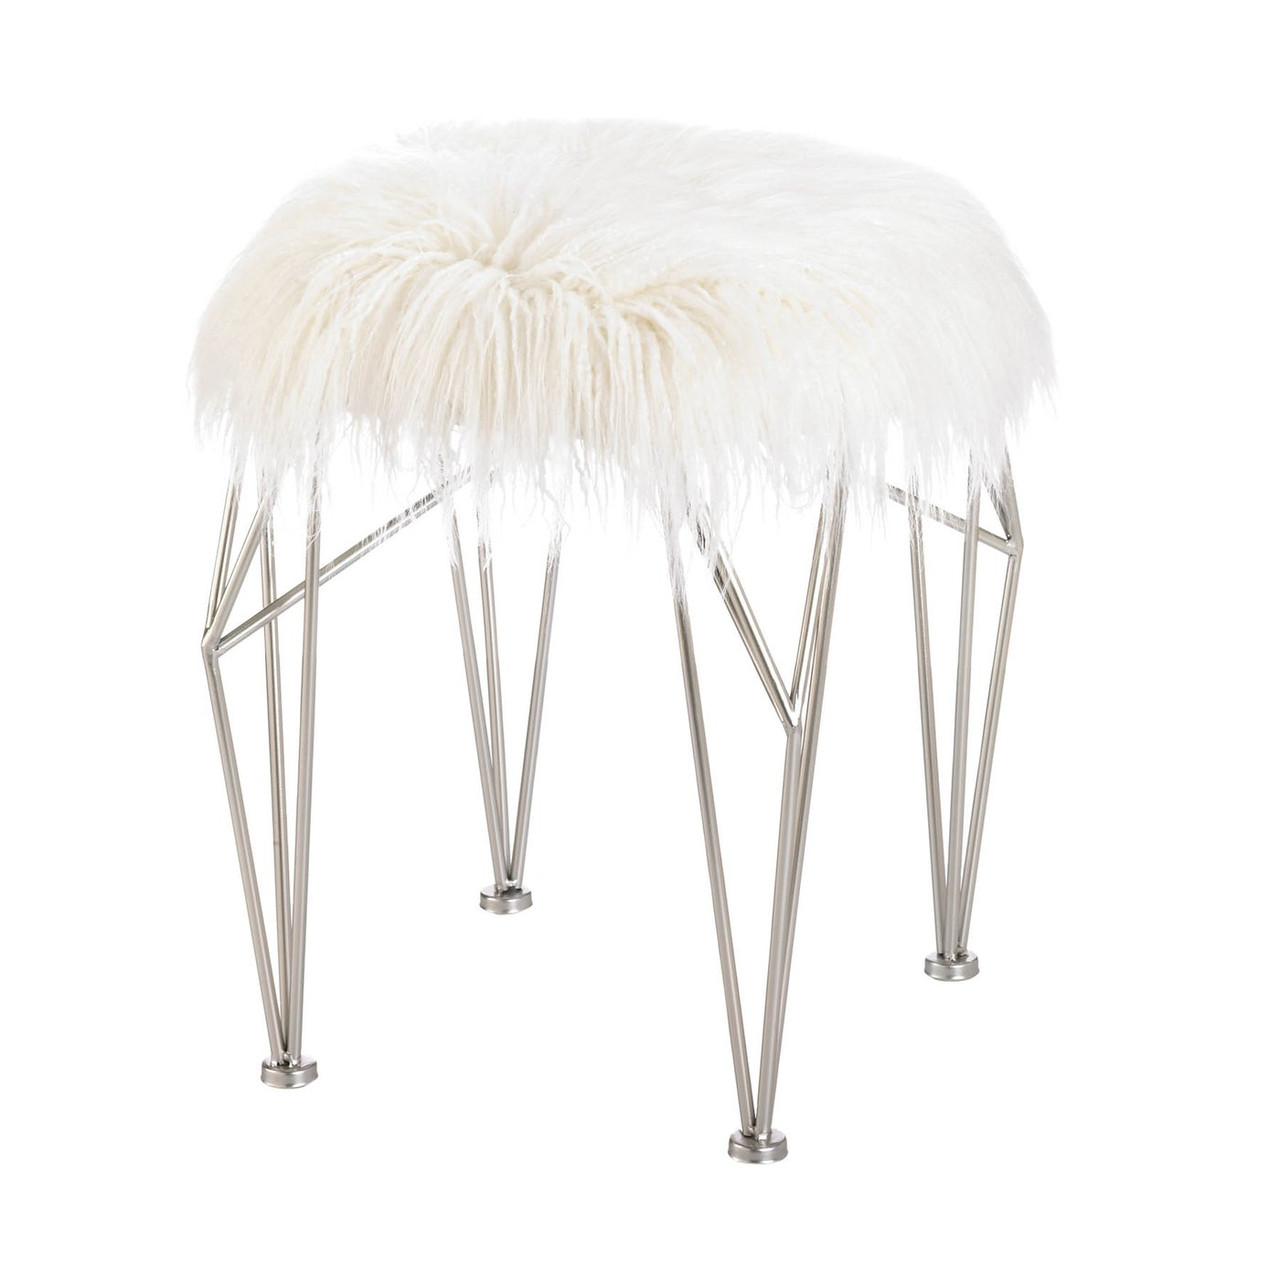 Image of: Silver Geometric Vanity Stool With White Faux Fur Aewholesale